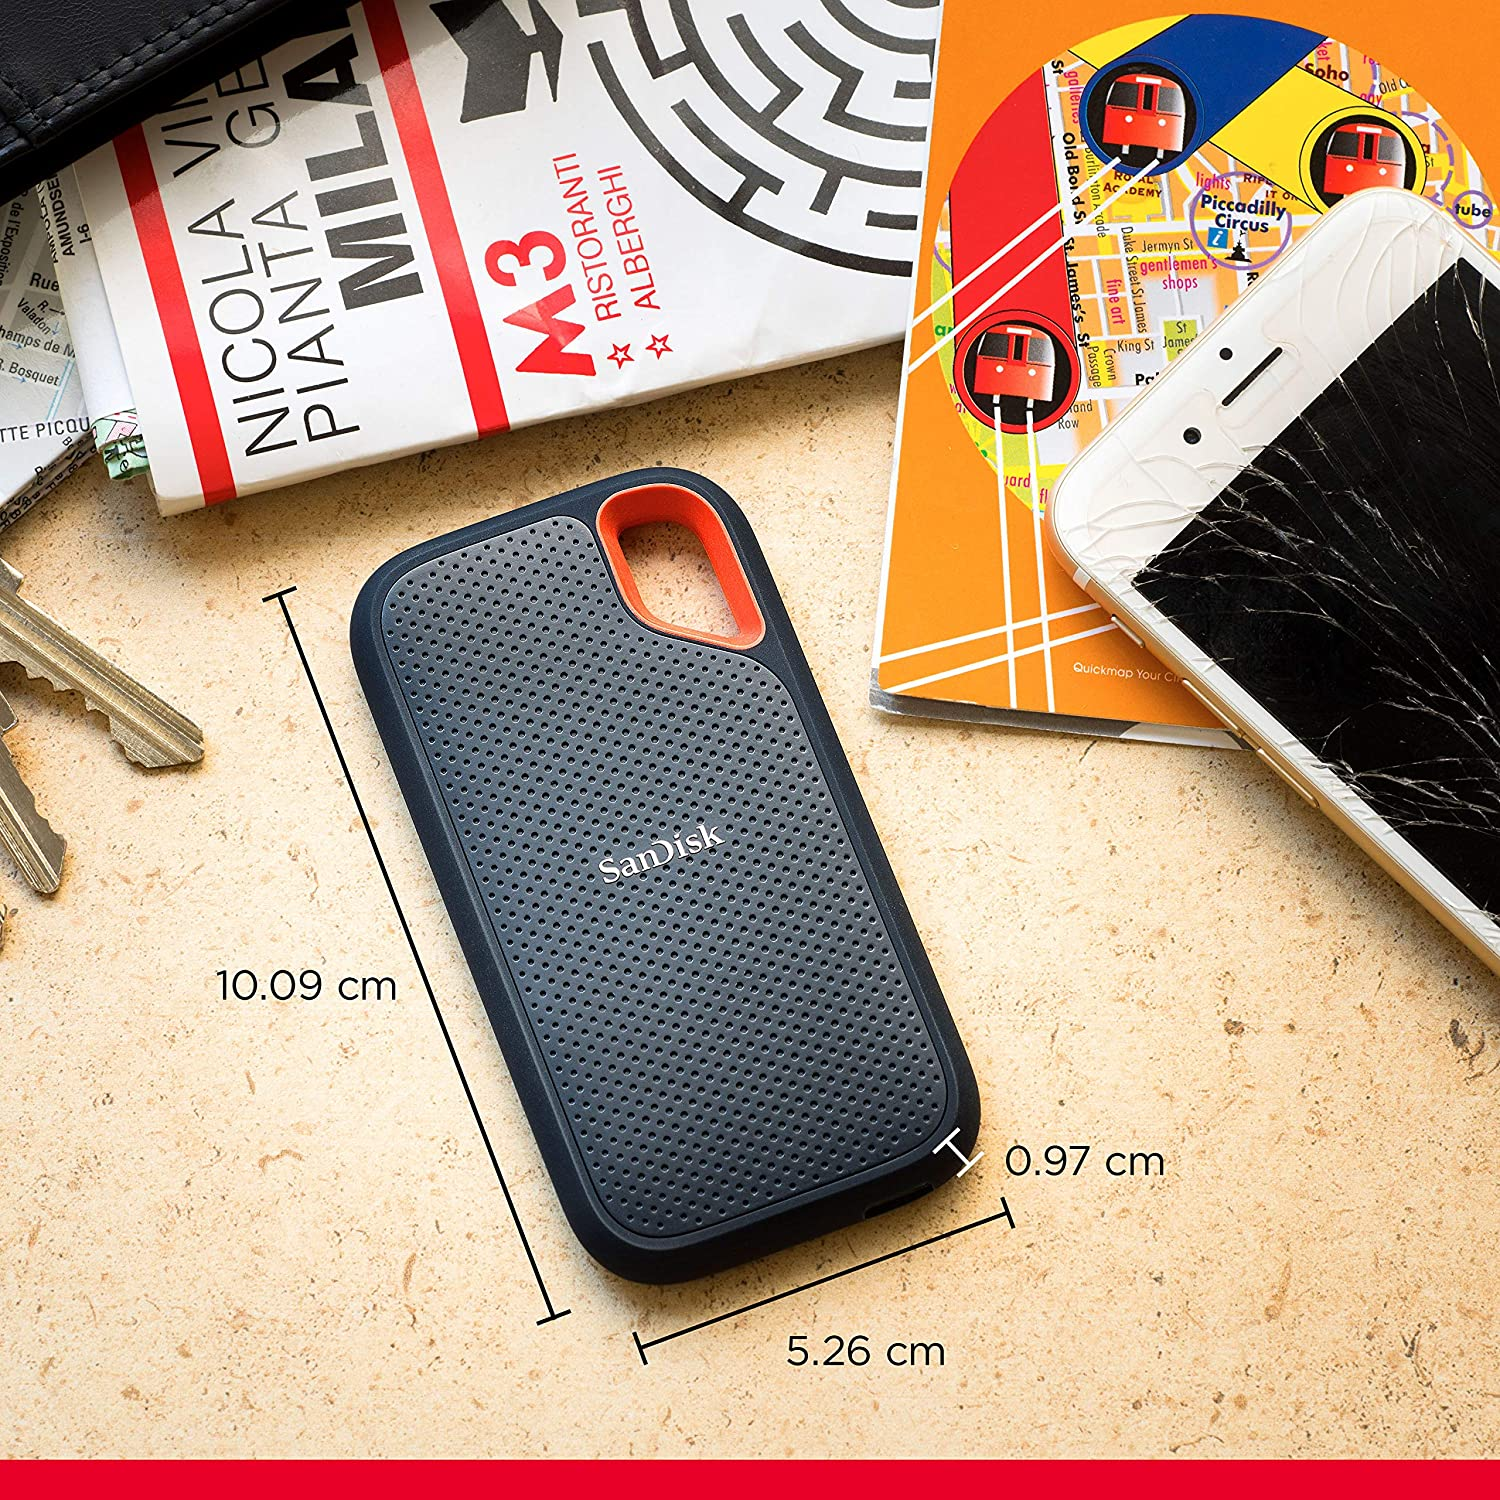 SanDisk Extreme 2TB Portable NVMe SSD Water and Dust-Resistant up to 1050MB//s Read and 1000MB//s Write Speed USB-C